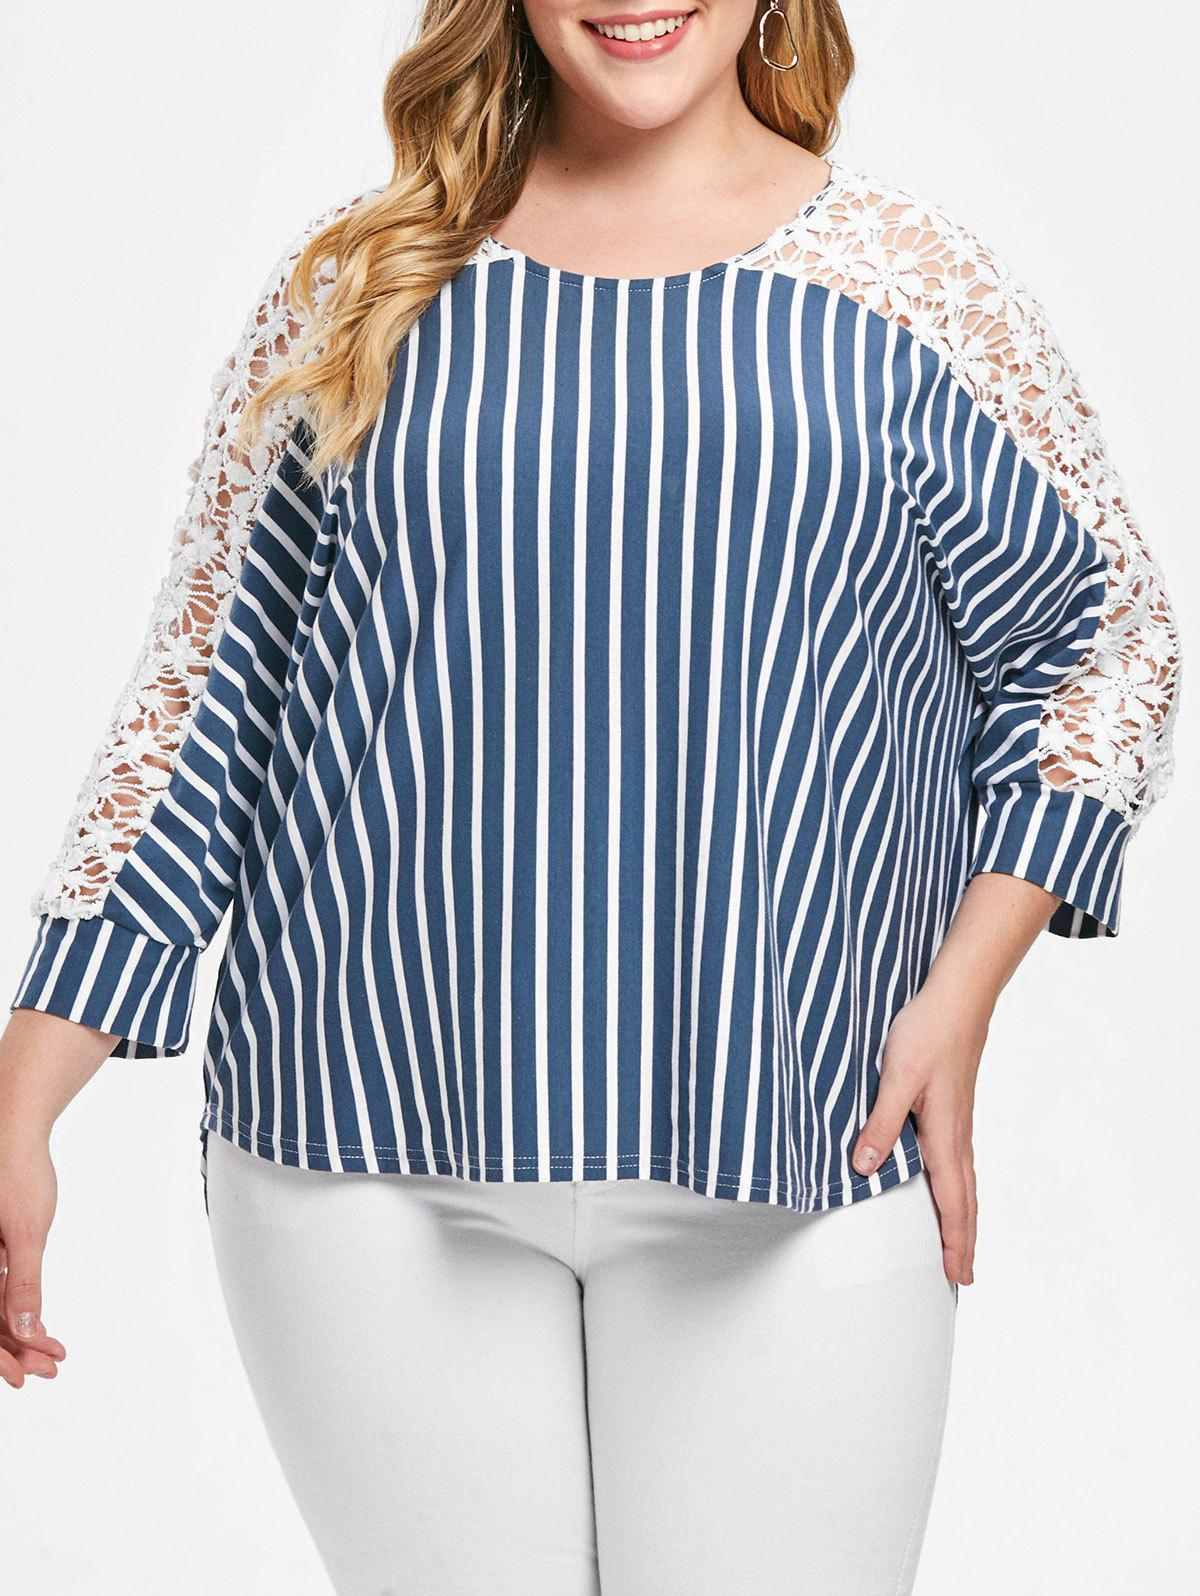 Sheer Lace Insert Plus Size Striped Top - multicolor 3X